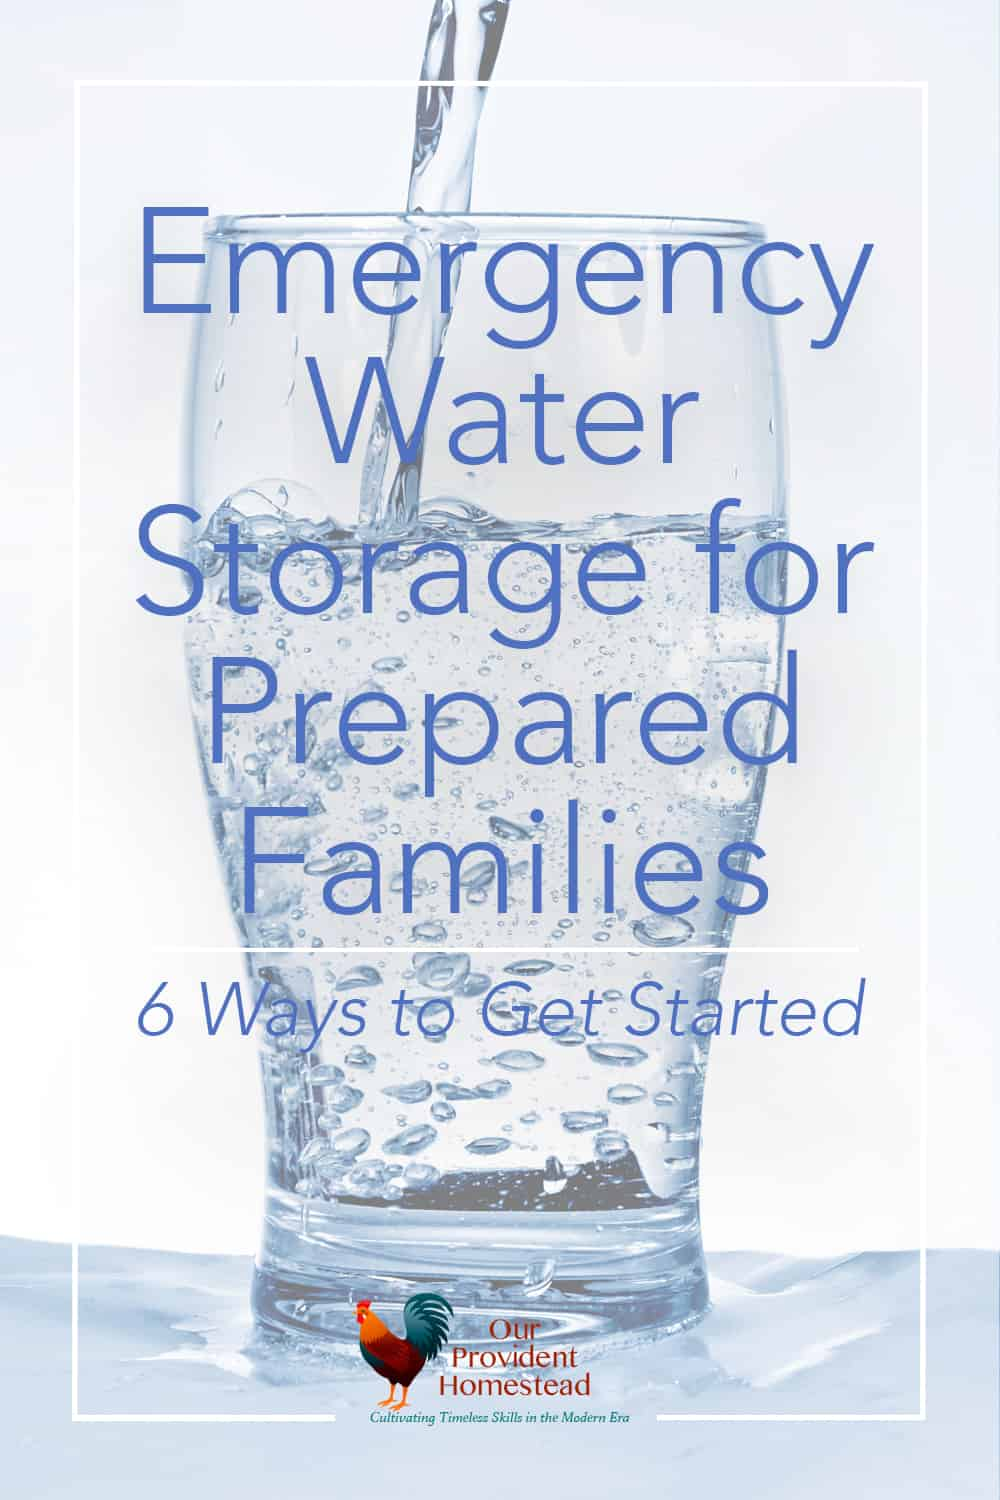 Do you have enough water stored for your family for an emergency? We discuss 6 ways to store water so you will be prepared in an emergency. #preparedness #SHTF #survival #survivaltips